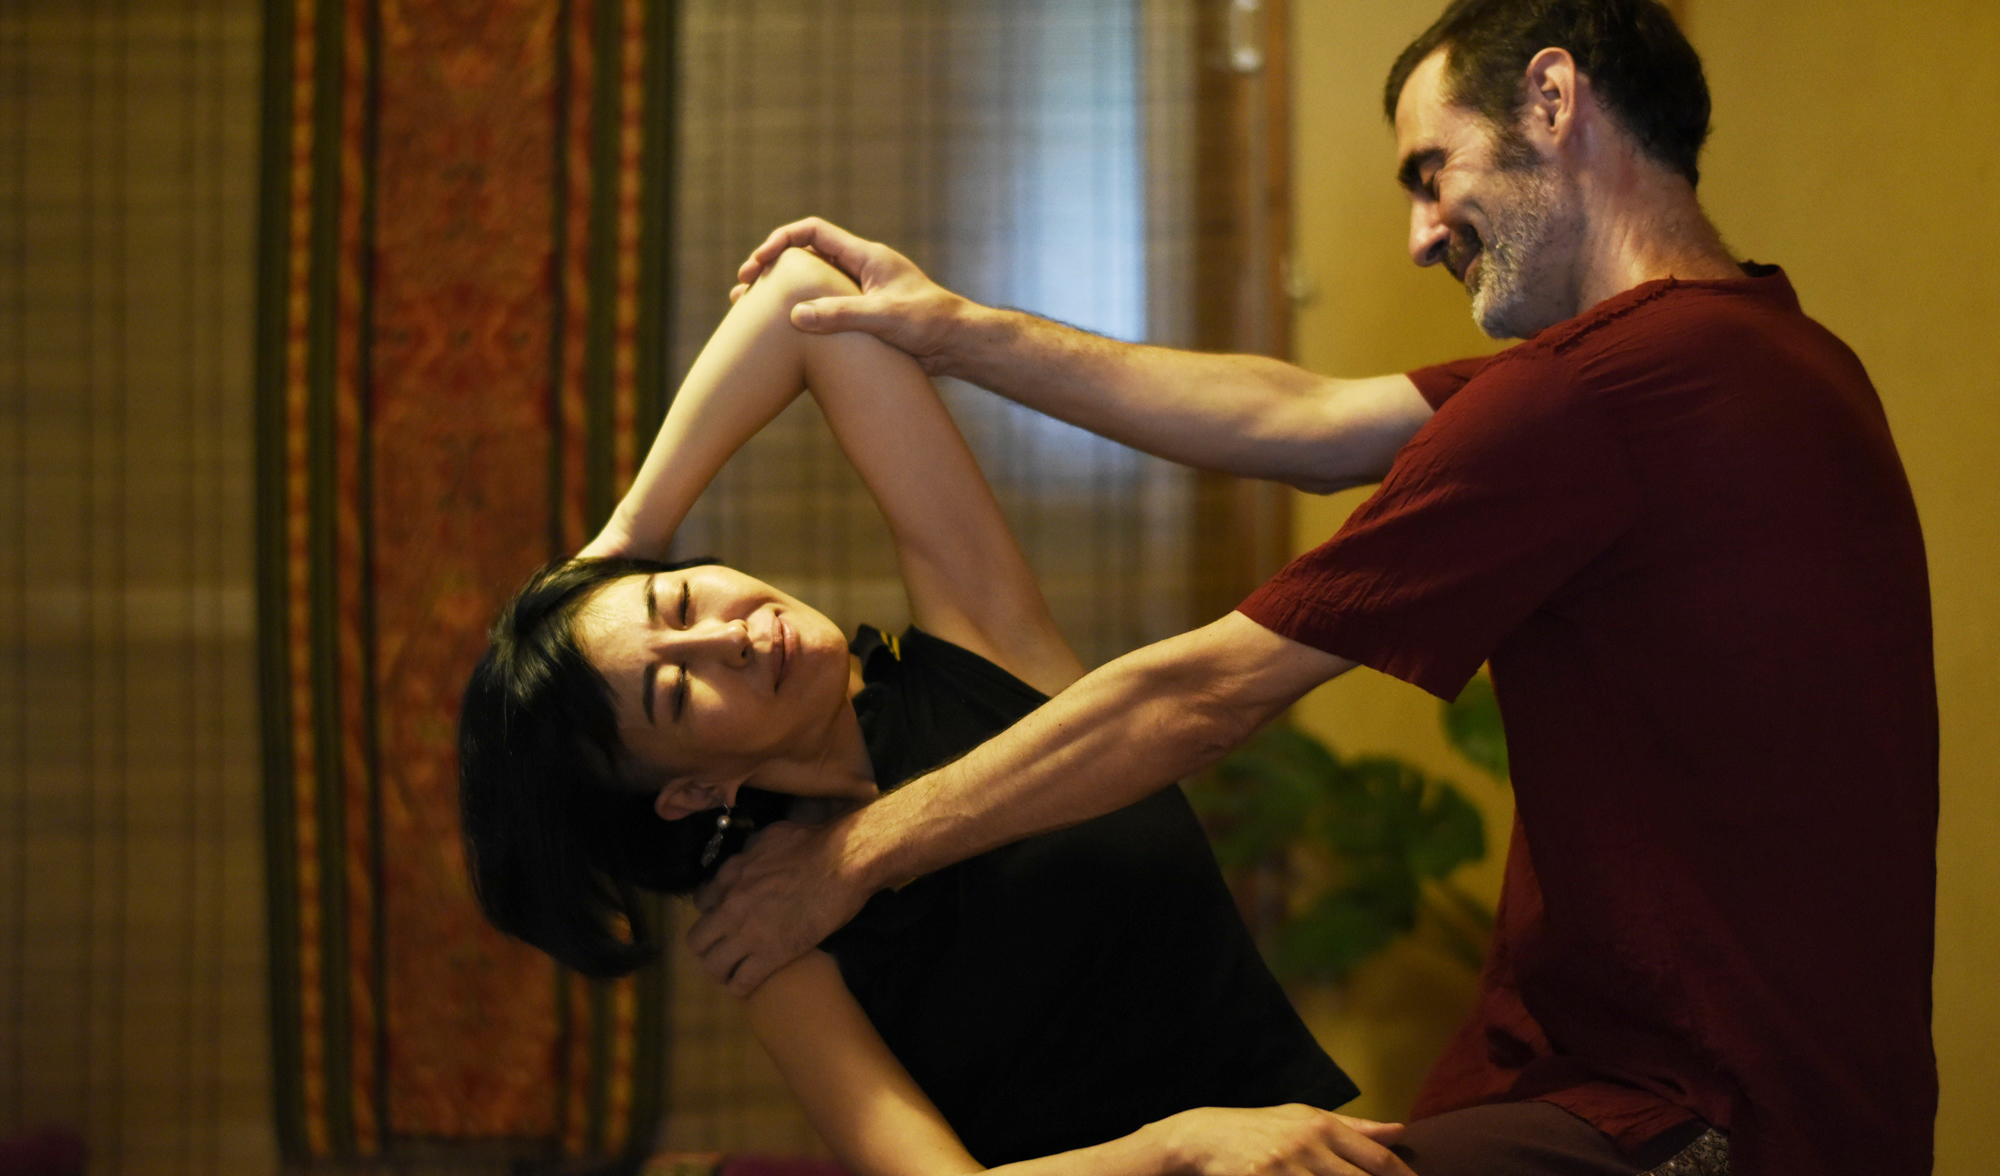 Thai Massage Kyoto Baan Lana deep relaxation